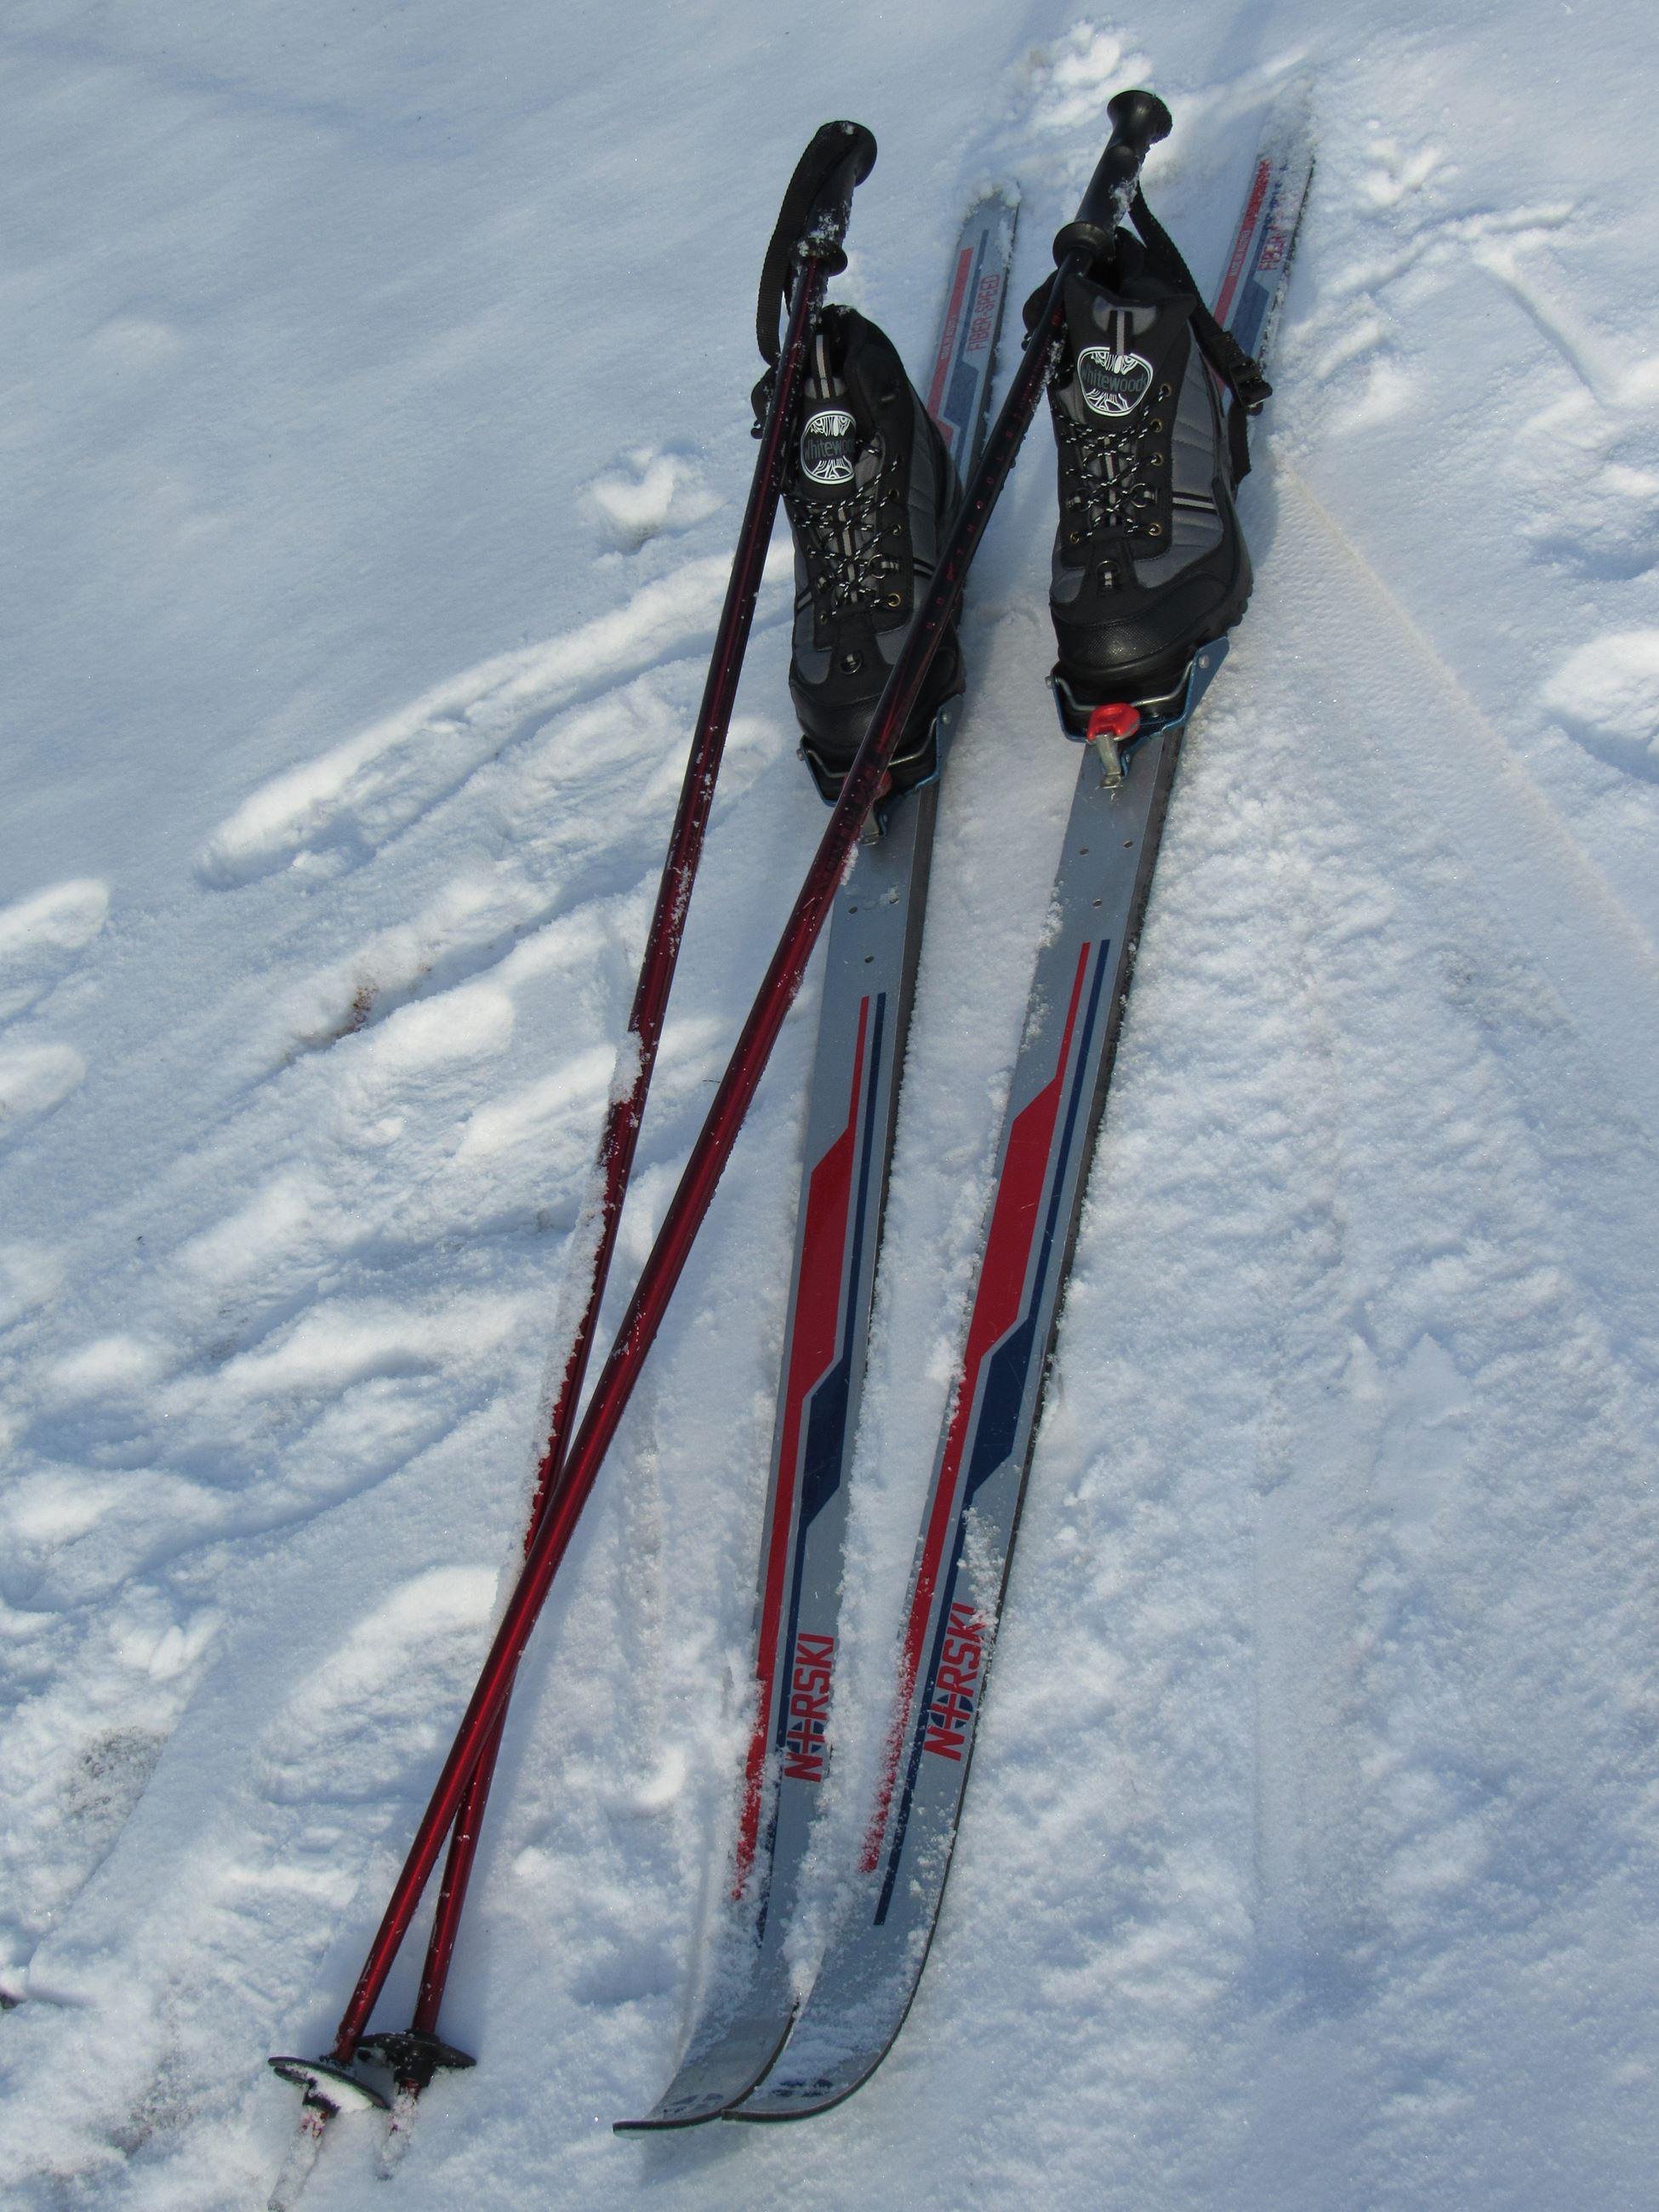 A pair of cross country skis